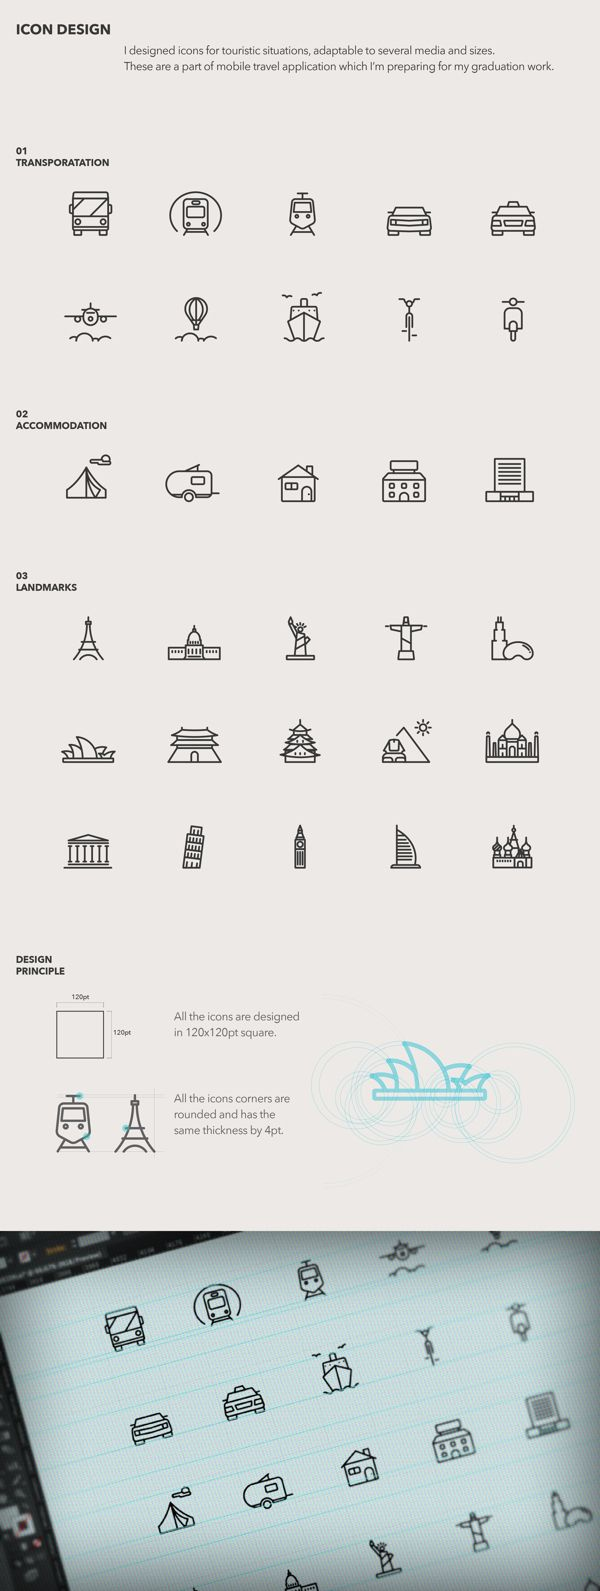 Touristic icon design,  Yoon J Kim